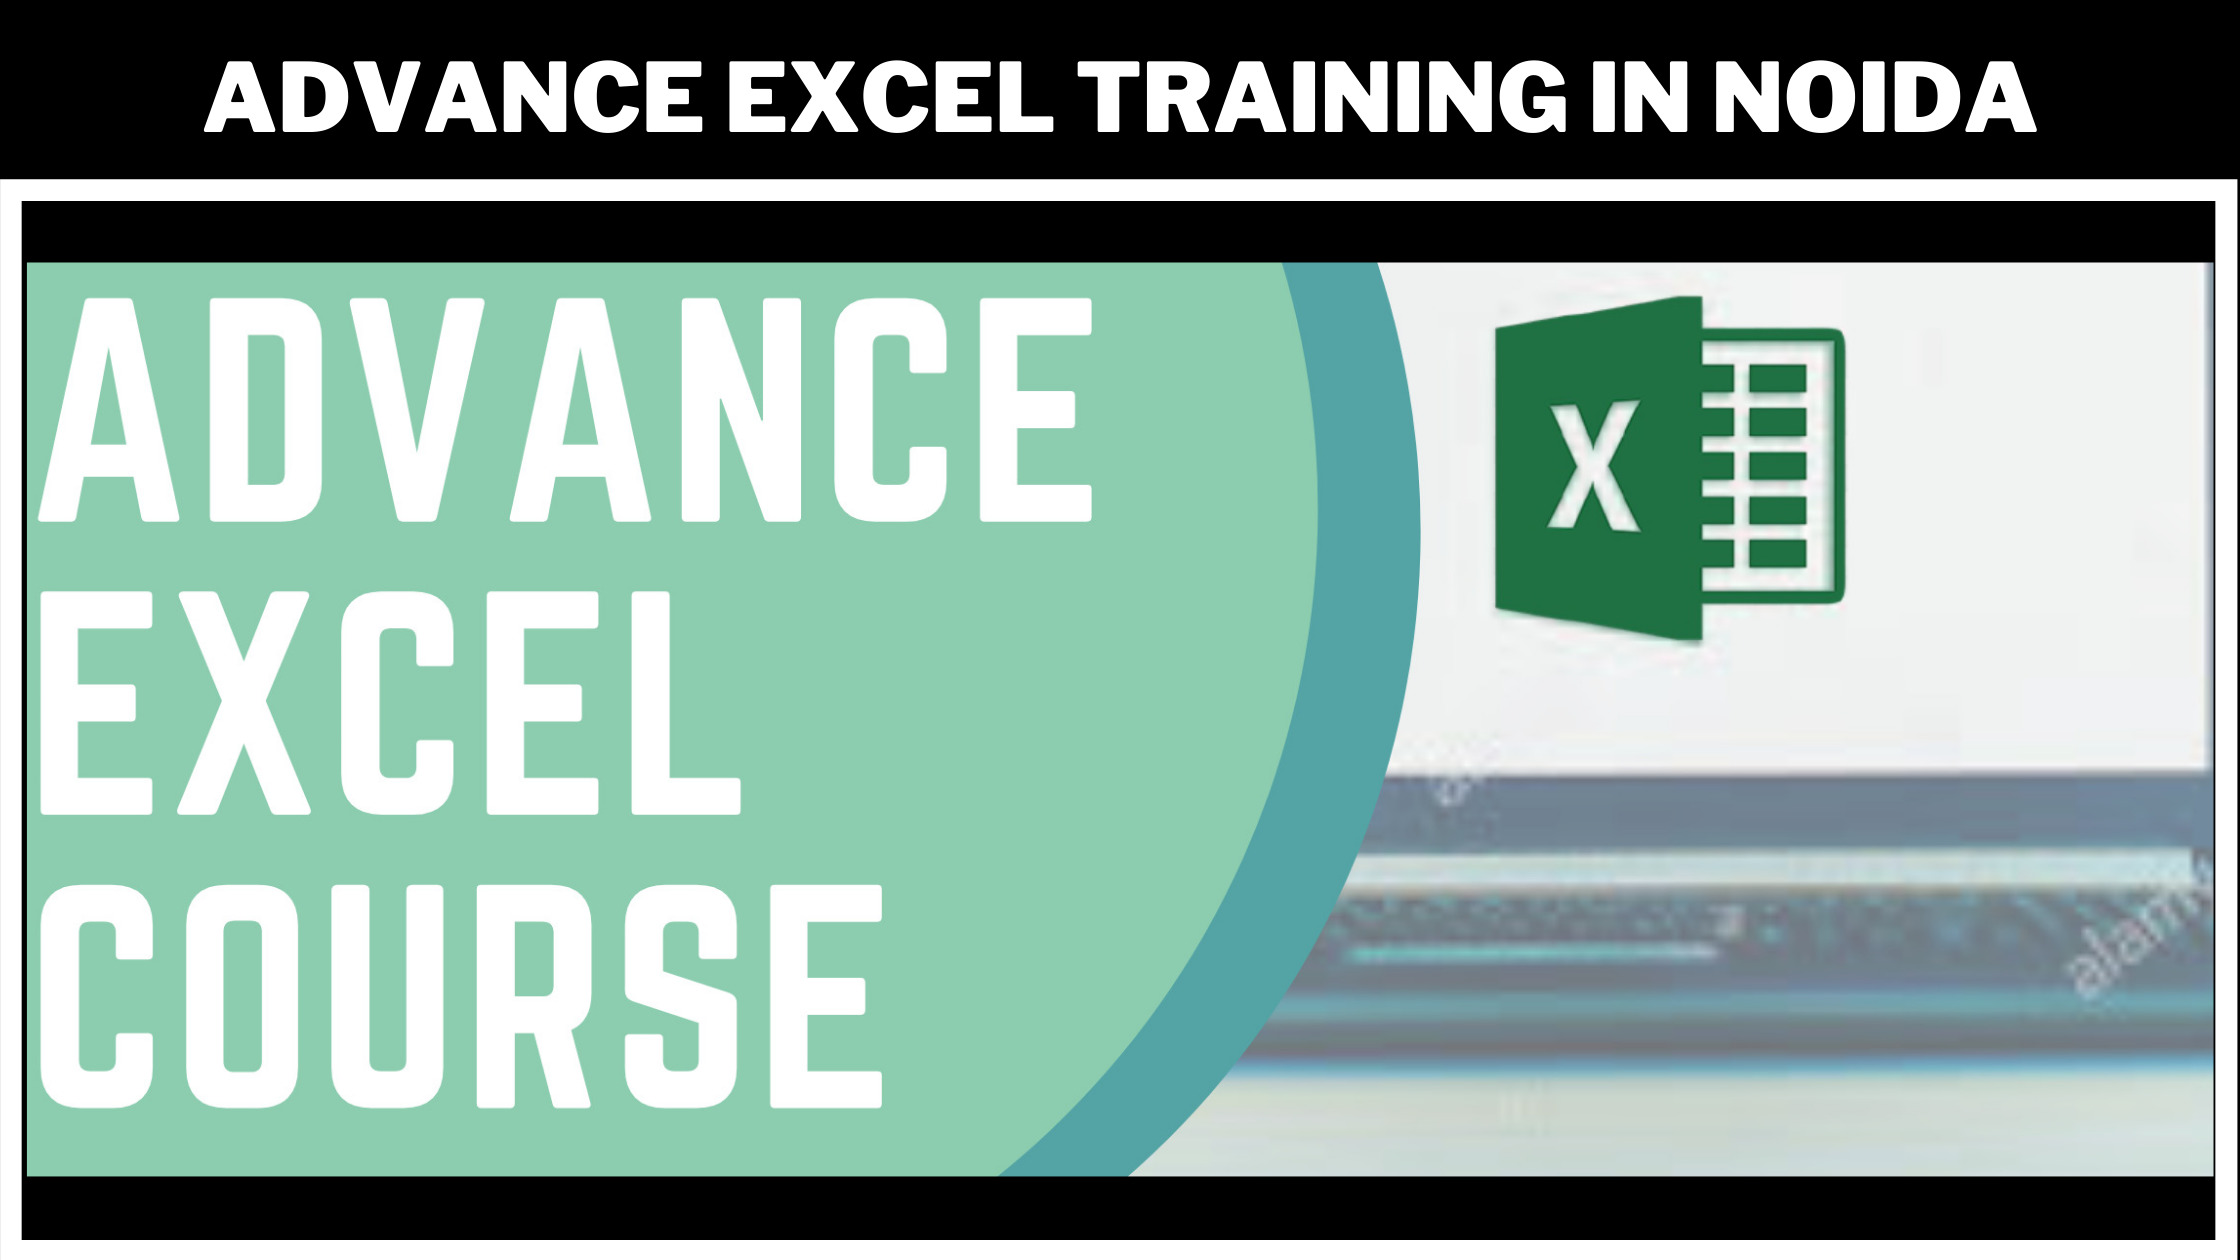 advance_excel_training_in_noida-background.jpeg